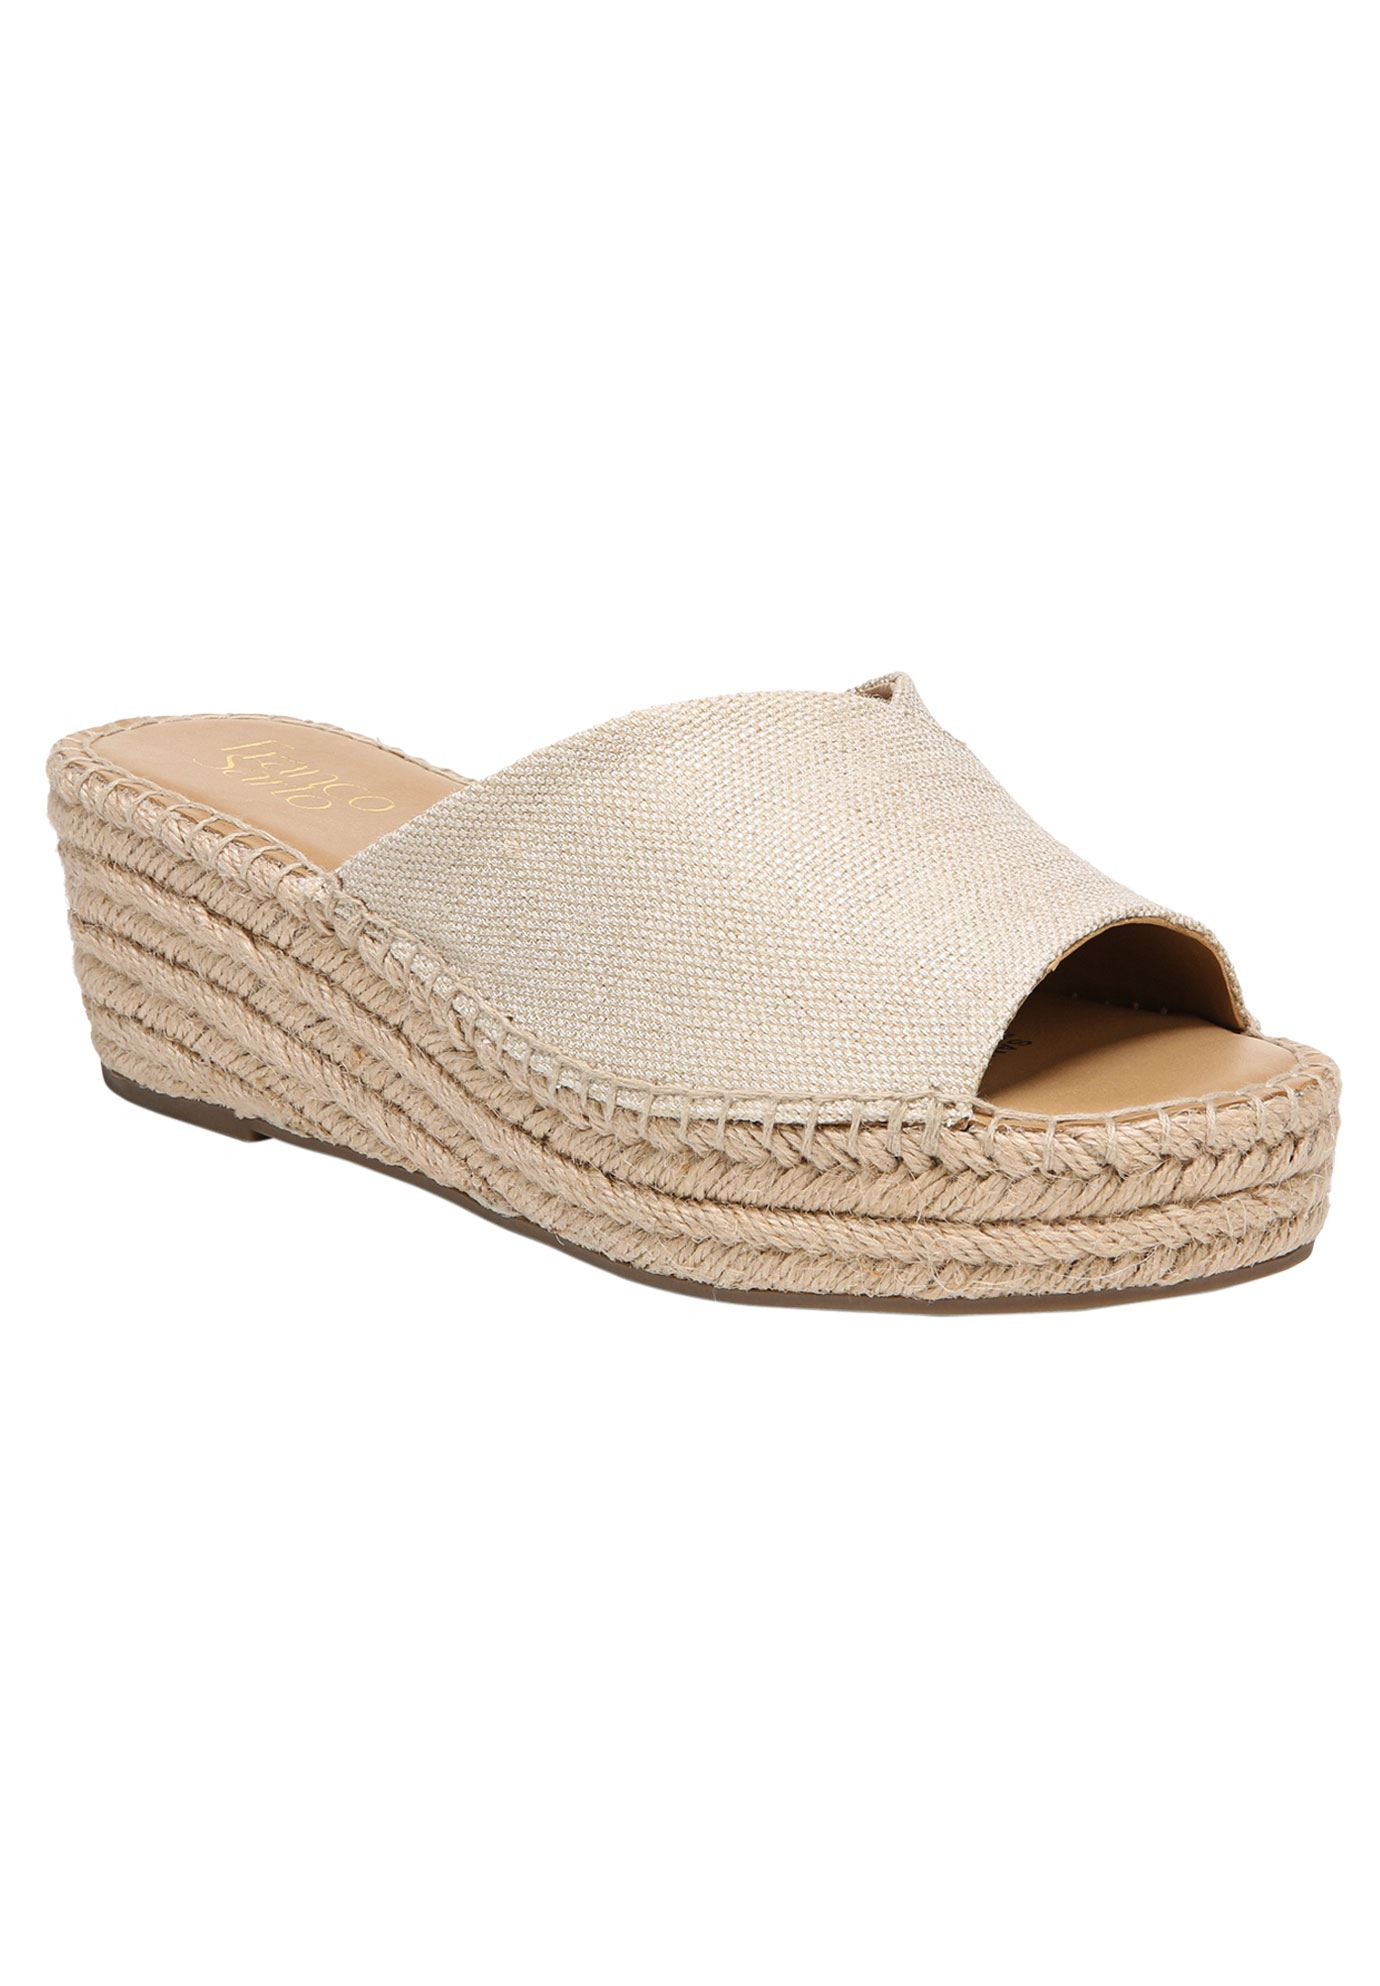 Pinot Espadrille Wedge Sandal by Franco Sarto,